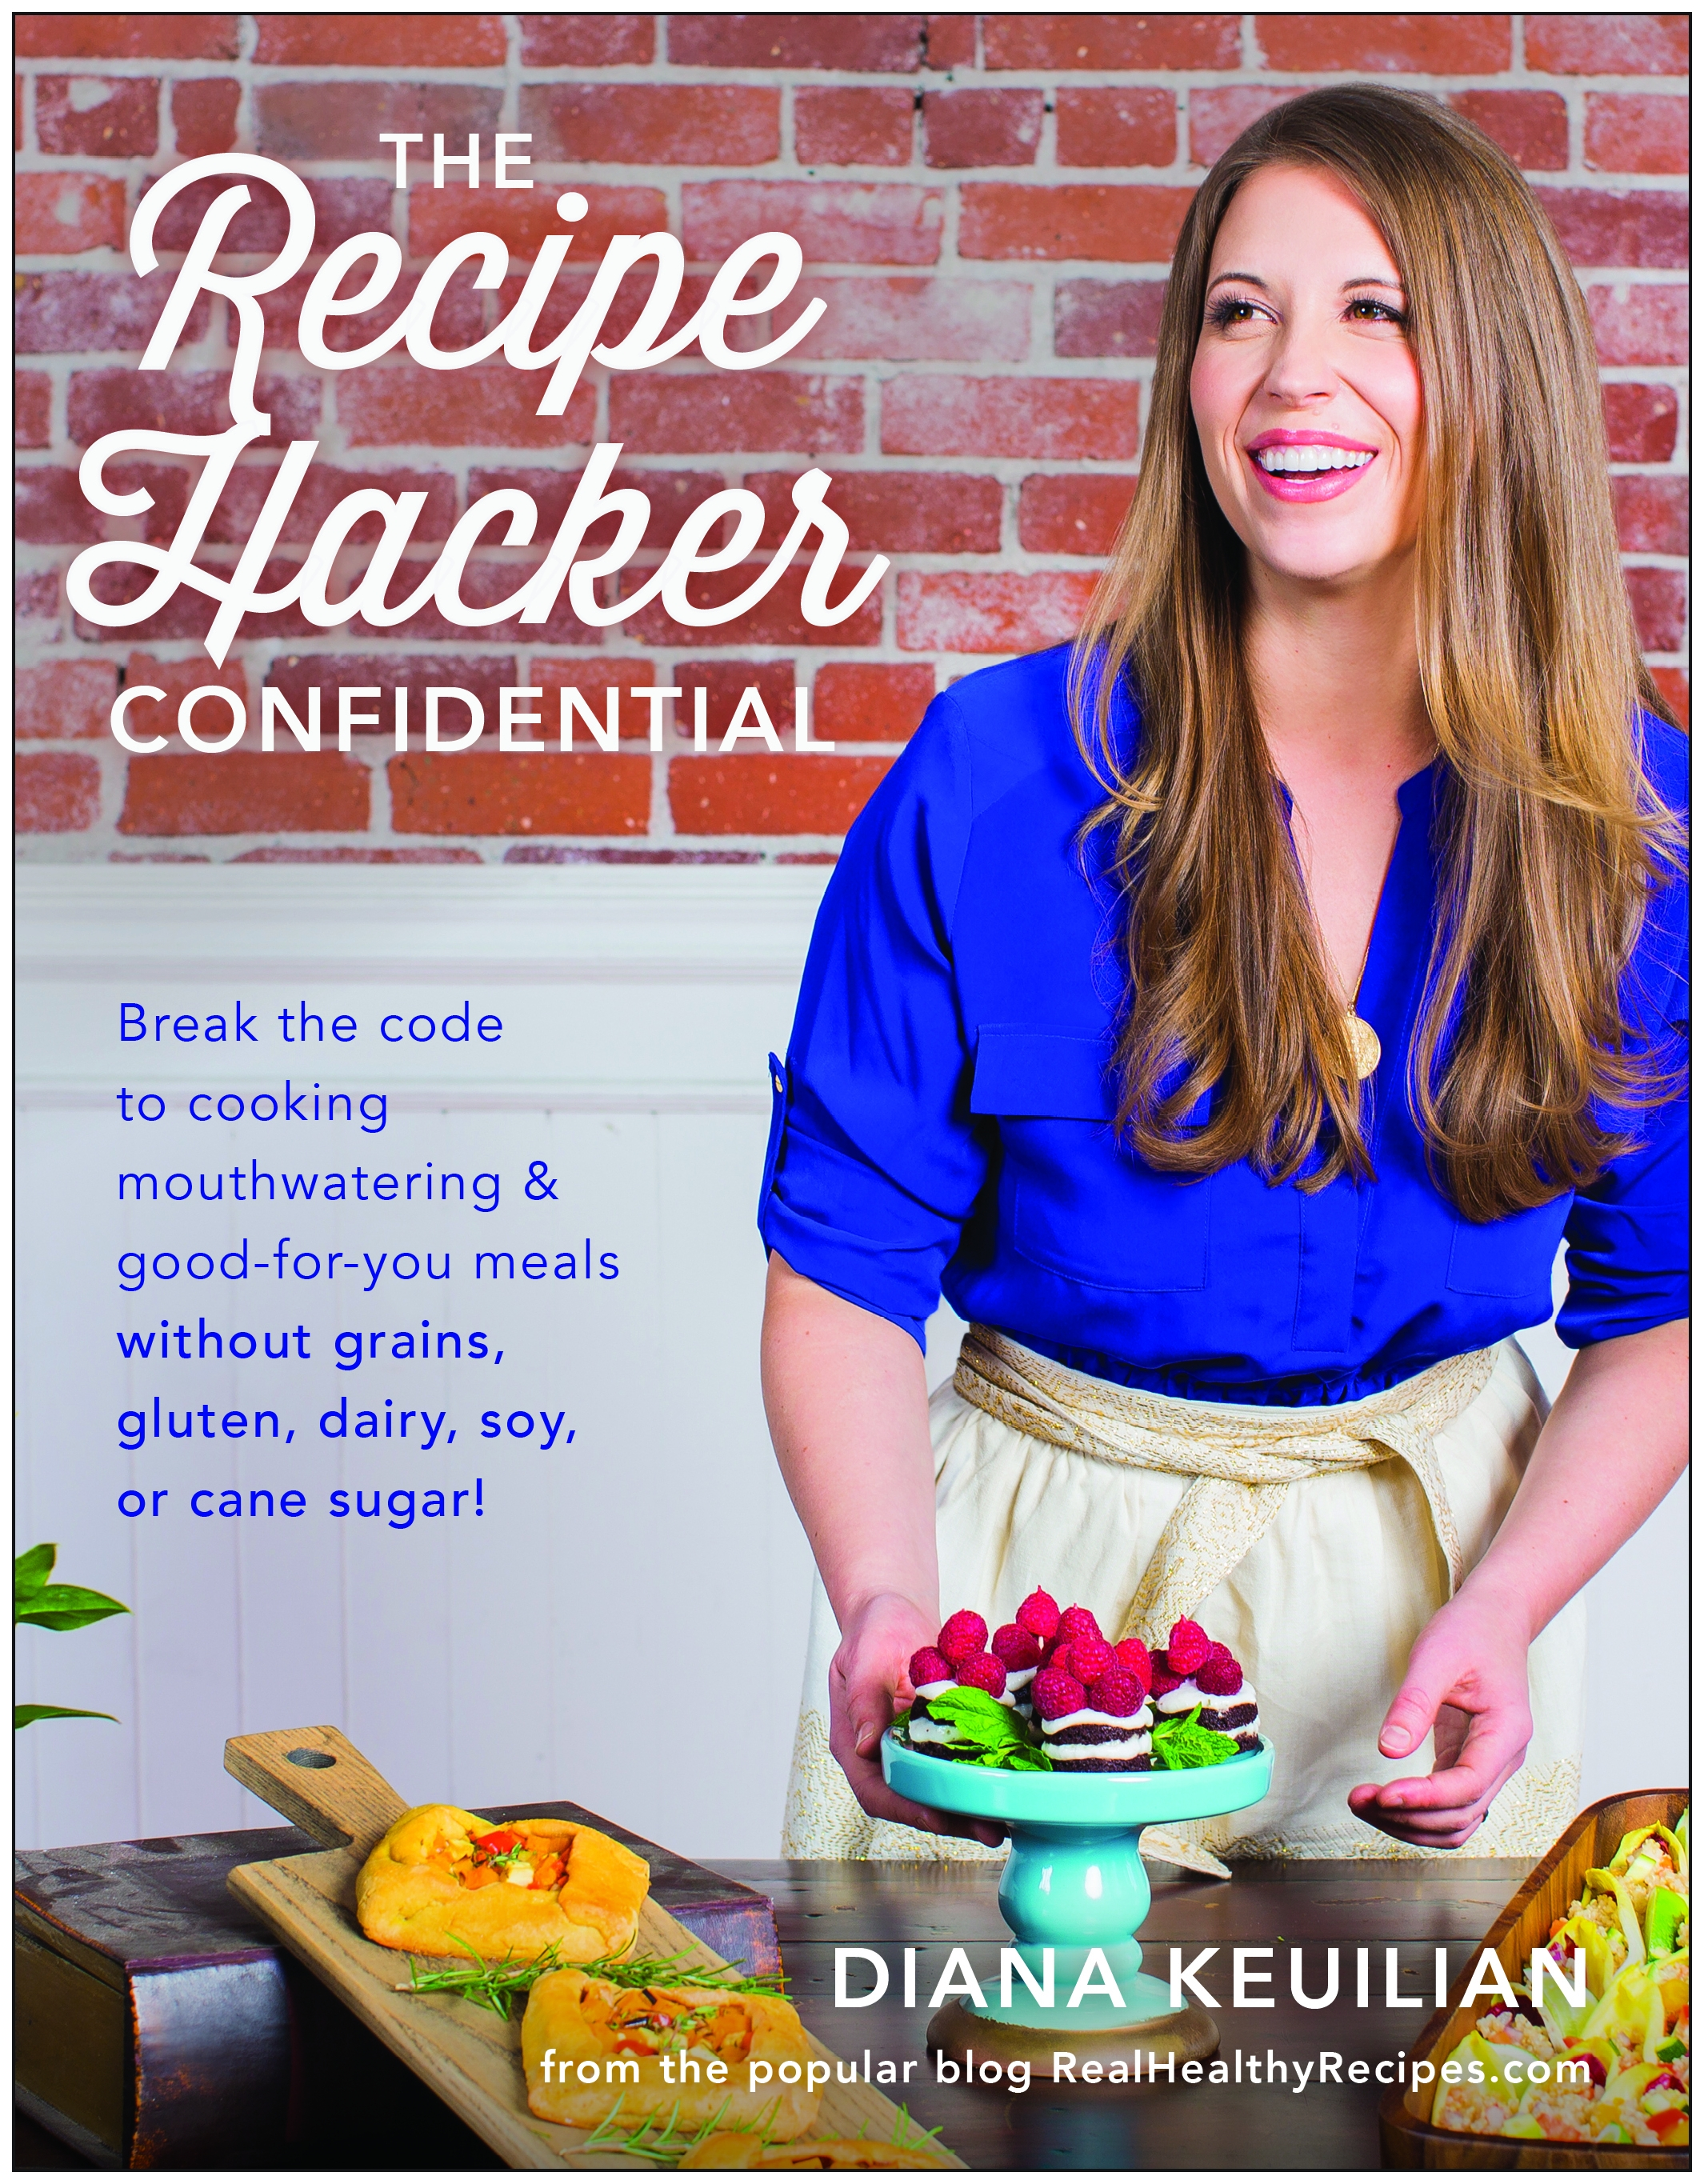 The Recipe Hacker Confidential:Unlock the Secret to Cooking Mouthwatering & Good-For-You Meals without Grains, Gluten, Dairy, Soy, or Cane Sugar